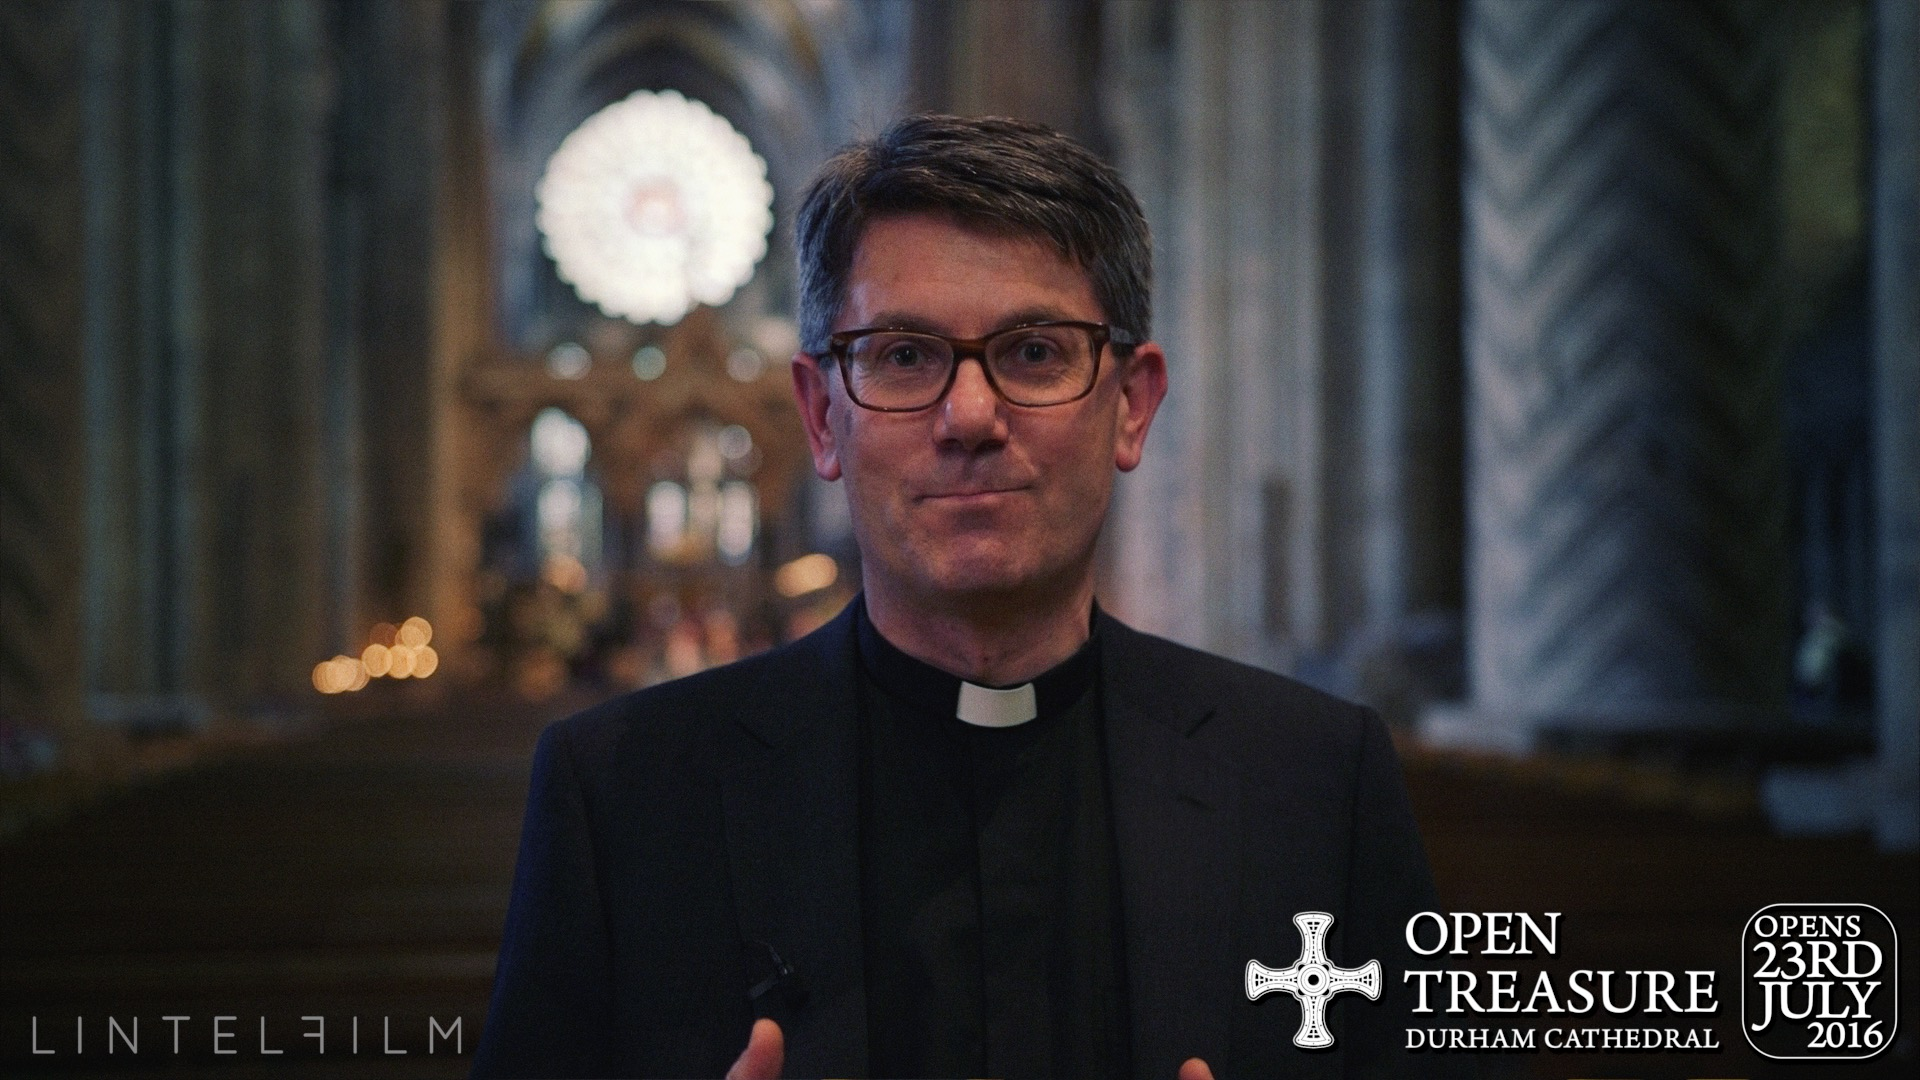 Durham Cathedral's new Dean, Andrew Tremlett